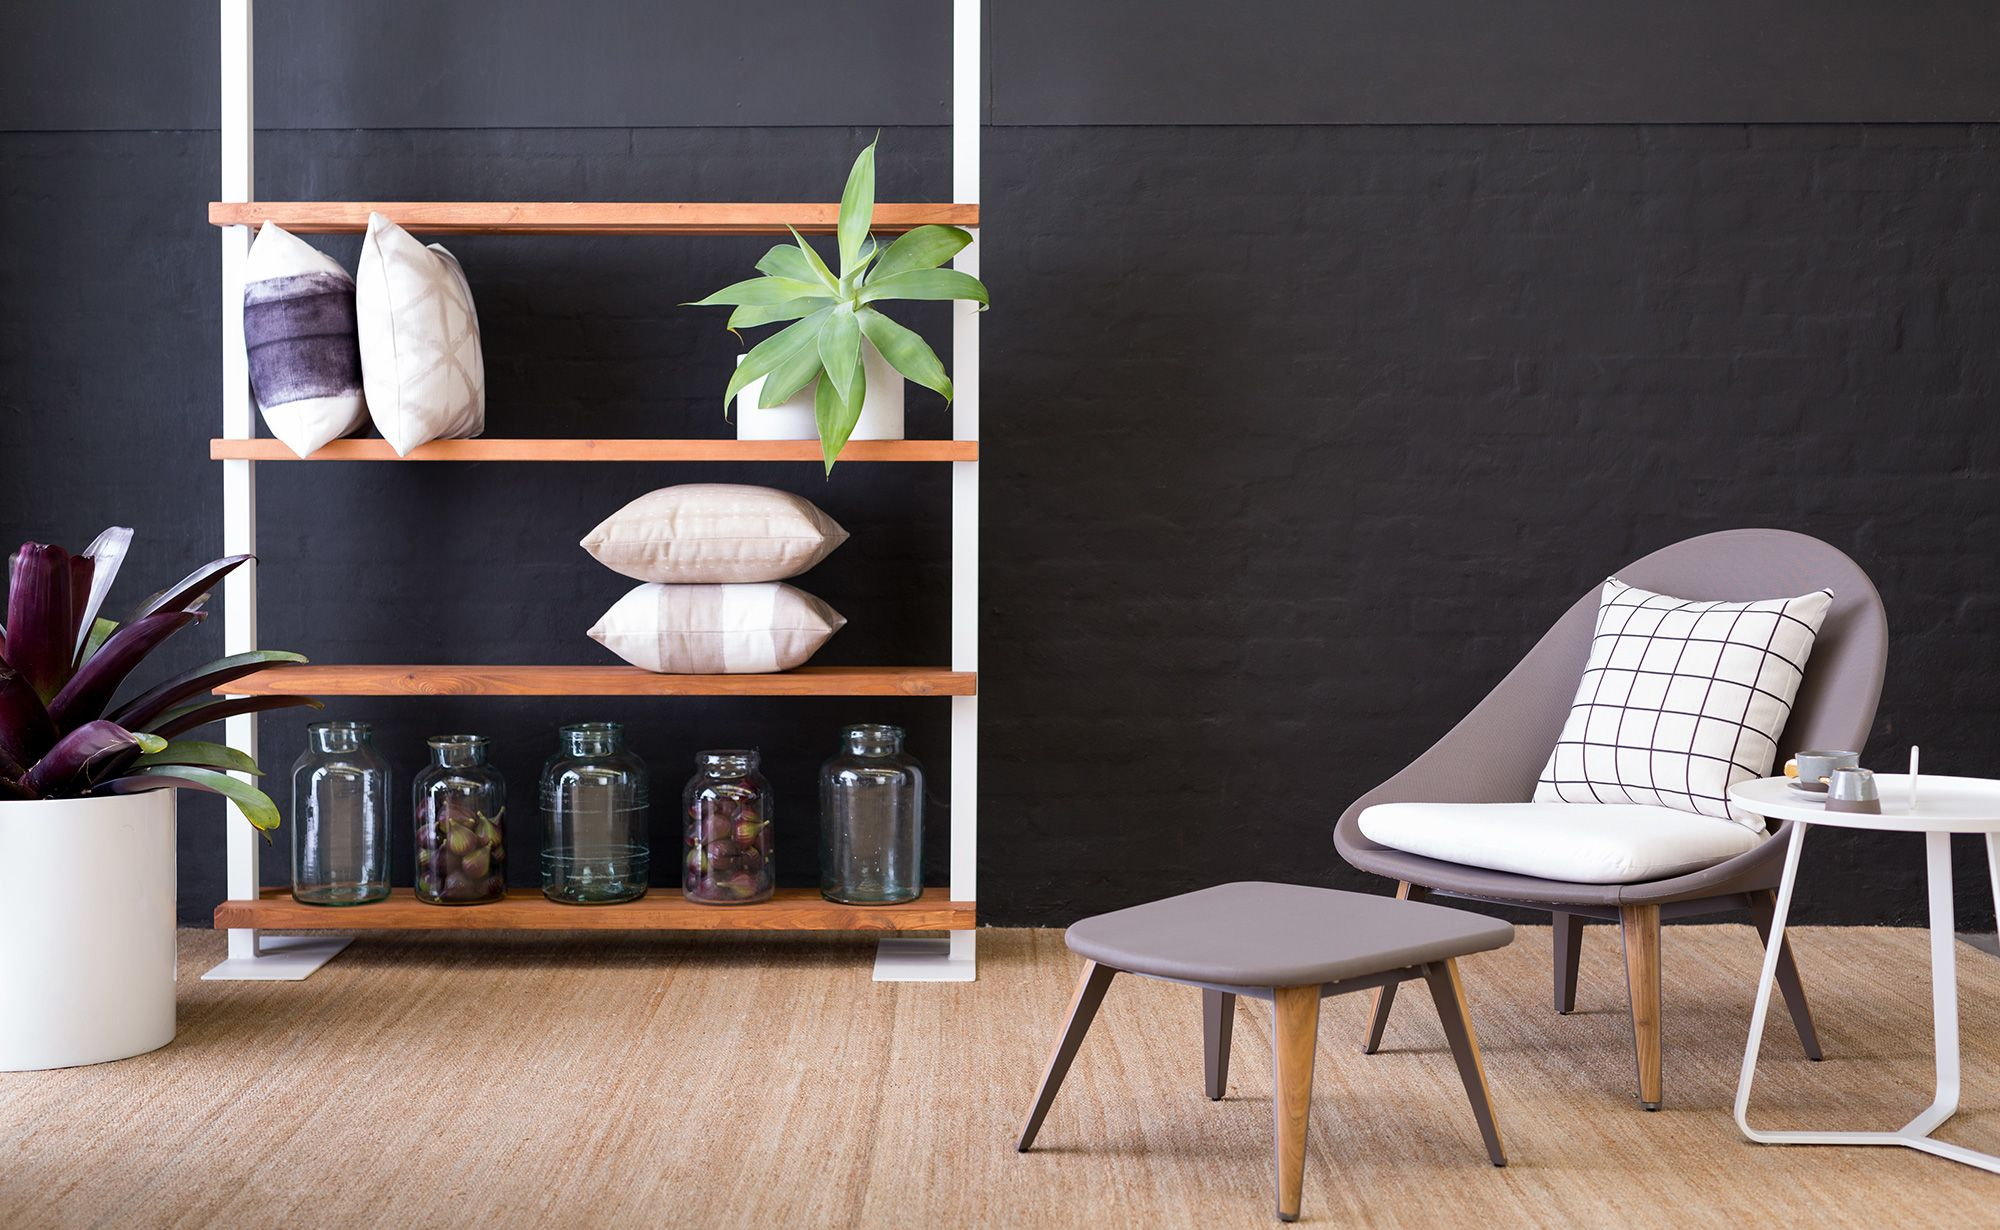 The St Martin Outdoor Shelf is a stylish storage solution for the modern outdoor space. Available exclusively at Coco Republic. #CocoRepublic #Outdoorfurnishings #Shelf #Styling #Exteriors